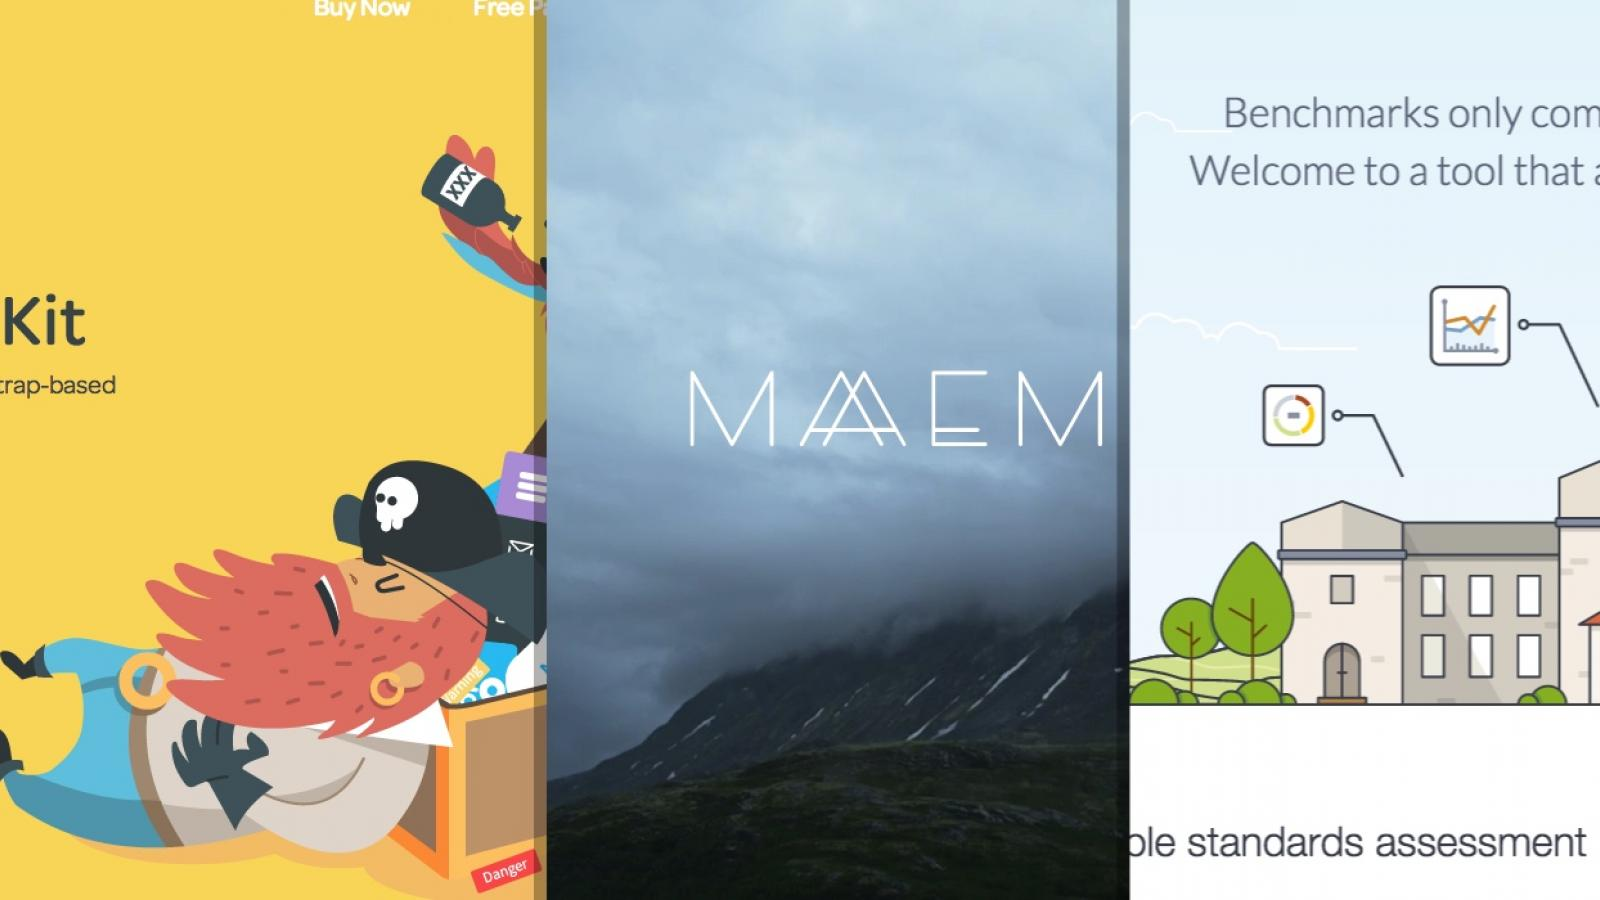 Sites of the Week: MetaLab, Hoarrd, Maaemo and more